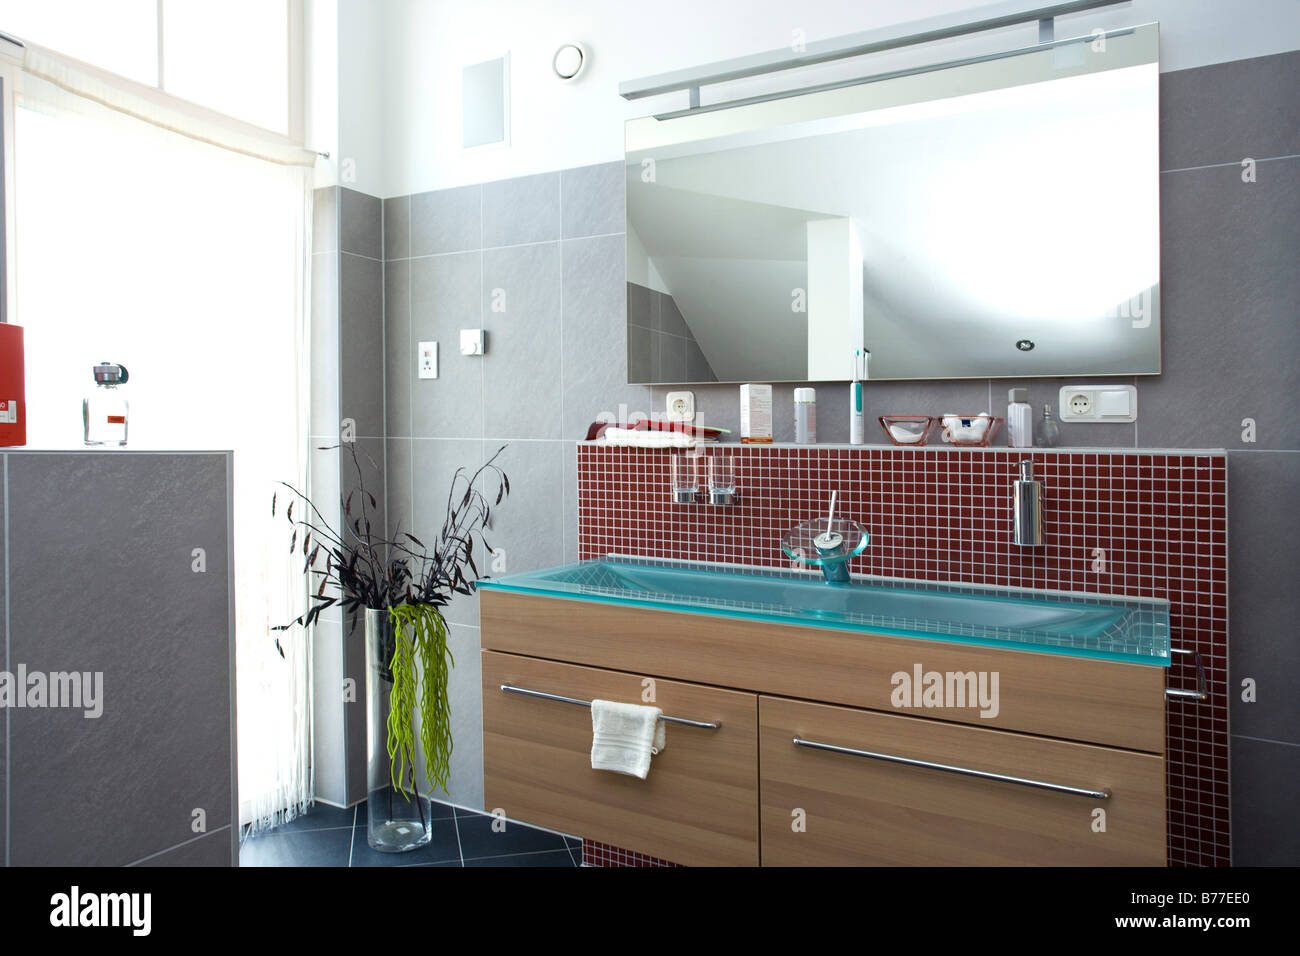 Badezimmer Bilder Modern Modernes Badezimmer Modern Bath Room Stock Photo 21677992 Alamy